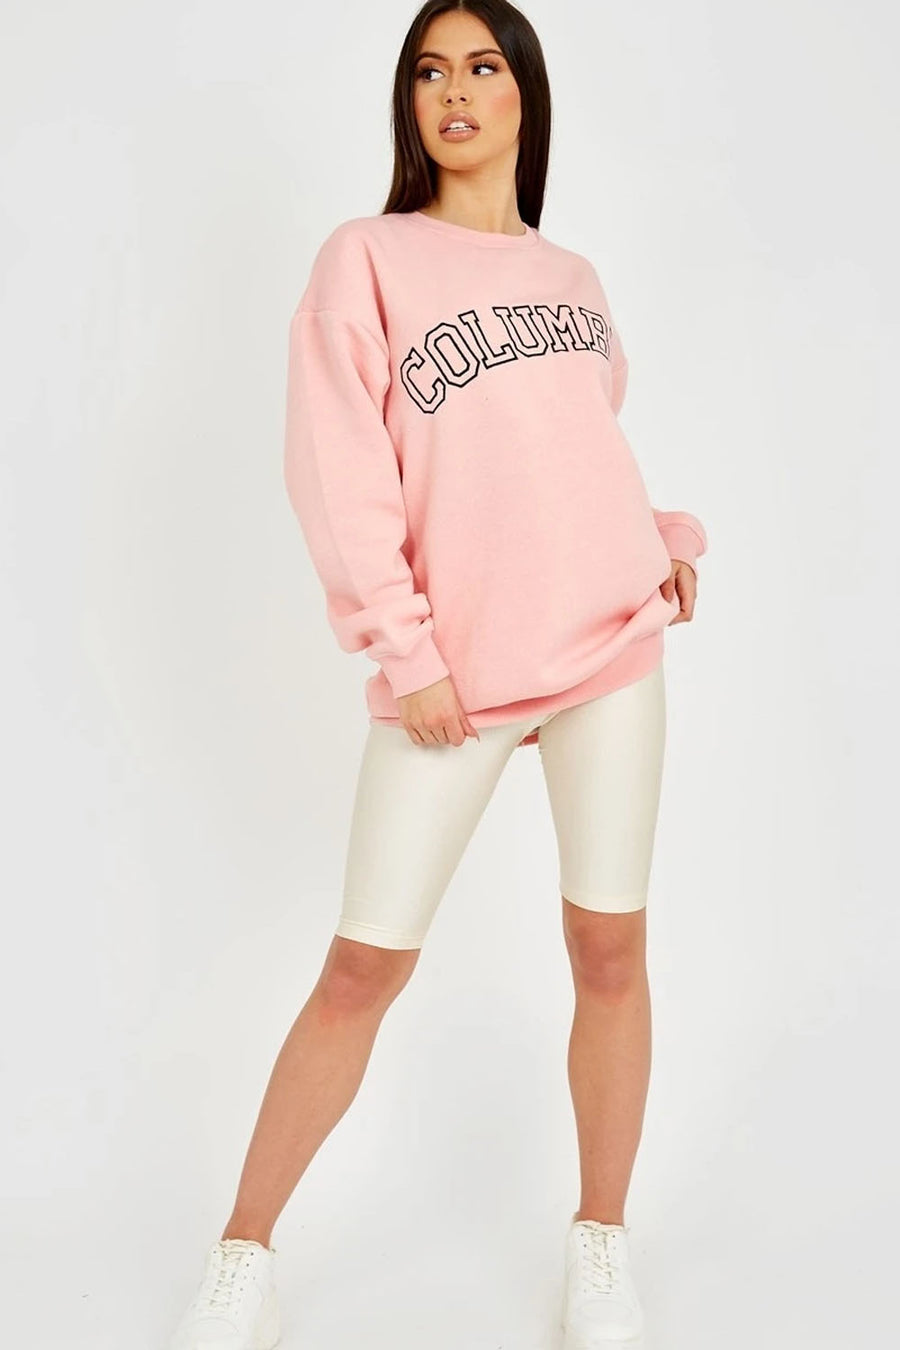 Pink COLUMBIA Embroidery Sweatshirt Jumper - Sarah